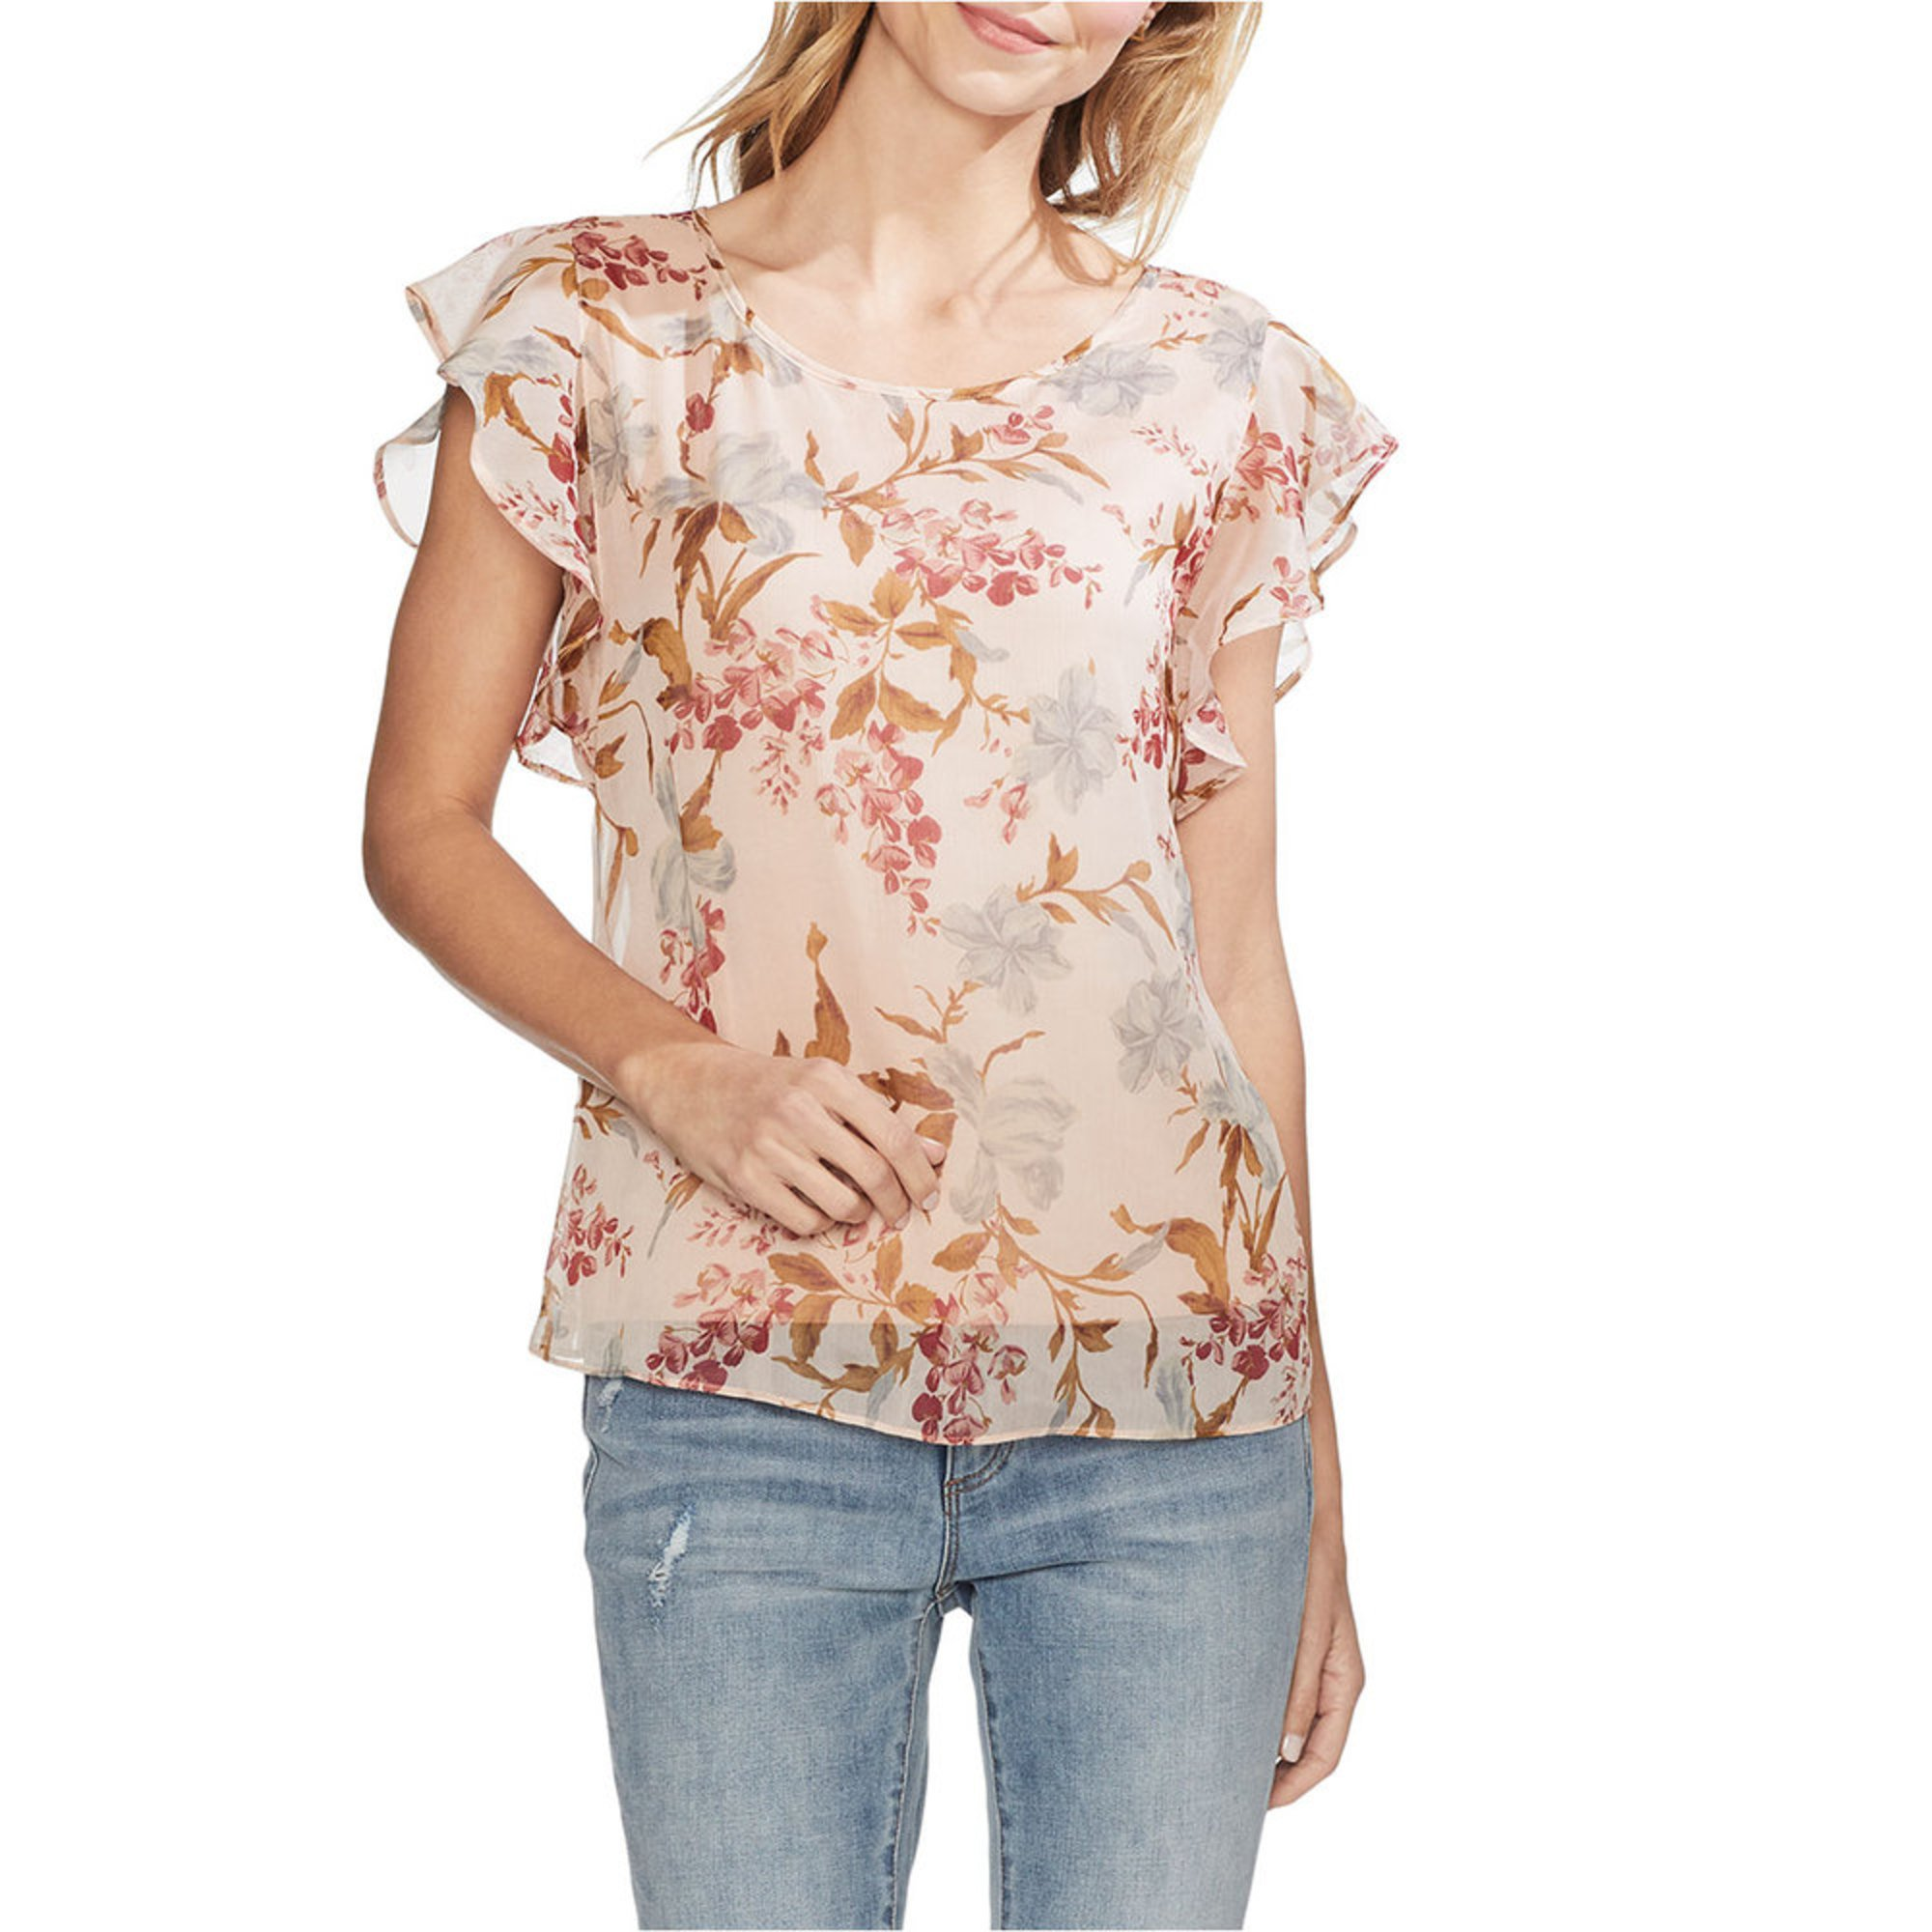 cb674511cbc676 Vince Camuto Wildflower Ruffle Sleeve Blouse   Blouses   Apparel ...